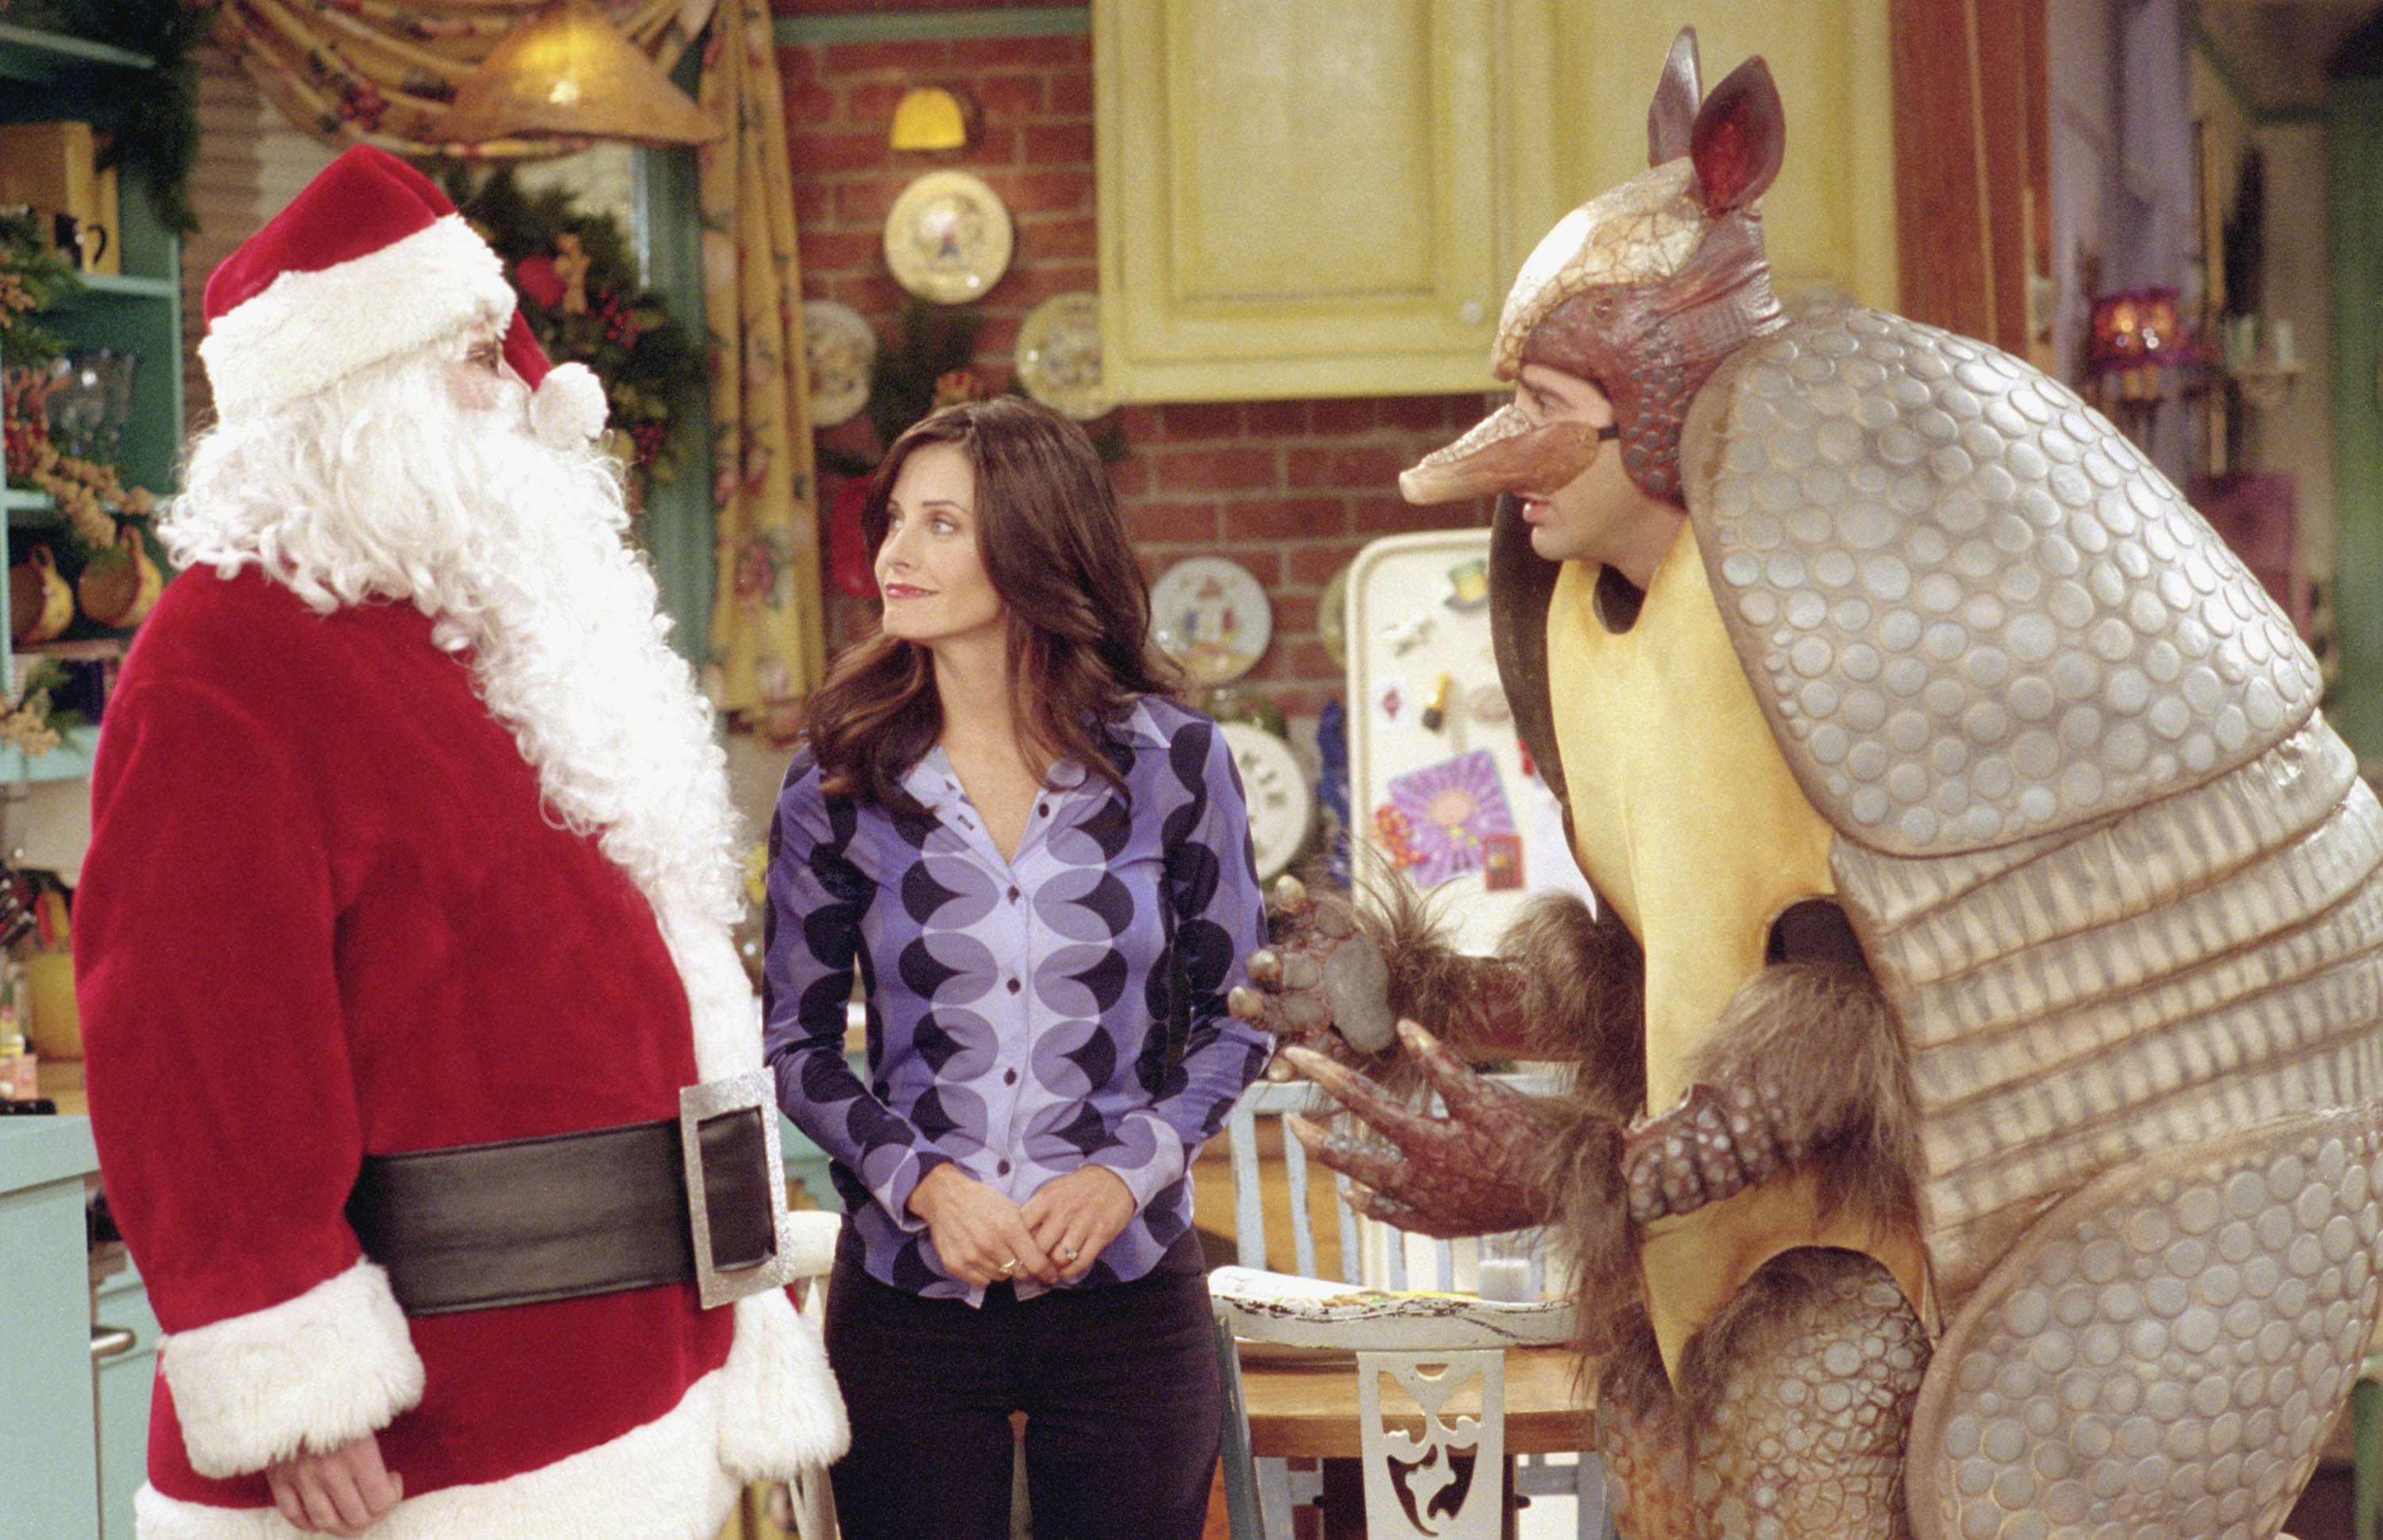 Christmas Armadillo Friends.The Best Friends Christmas Episodes Ranked Apartment Therapy